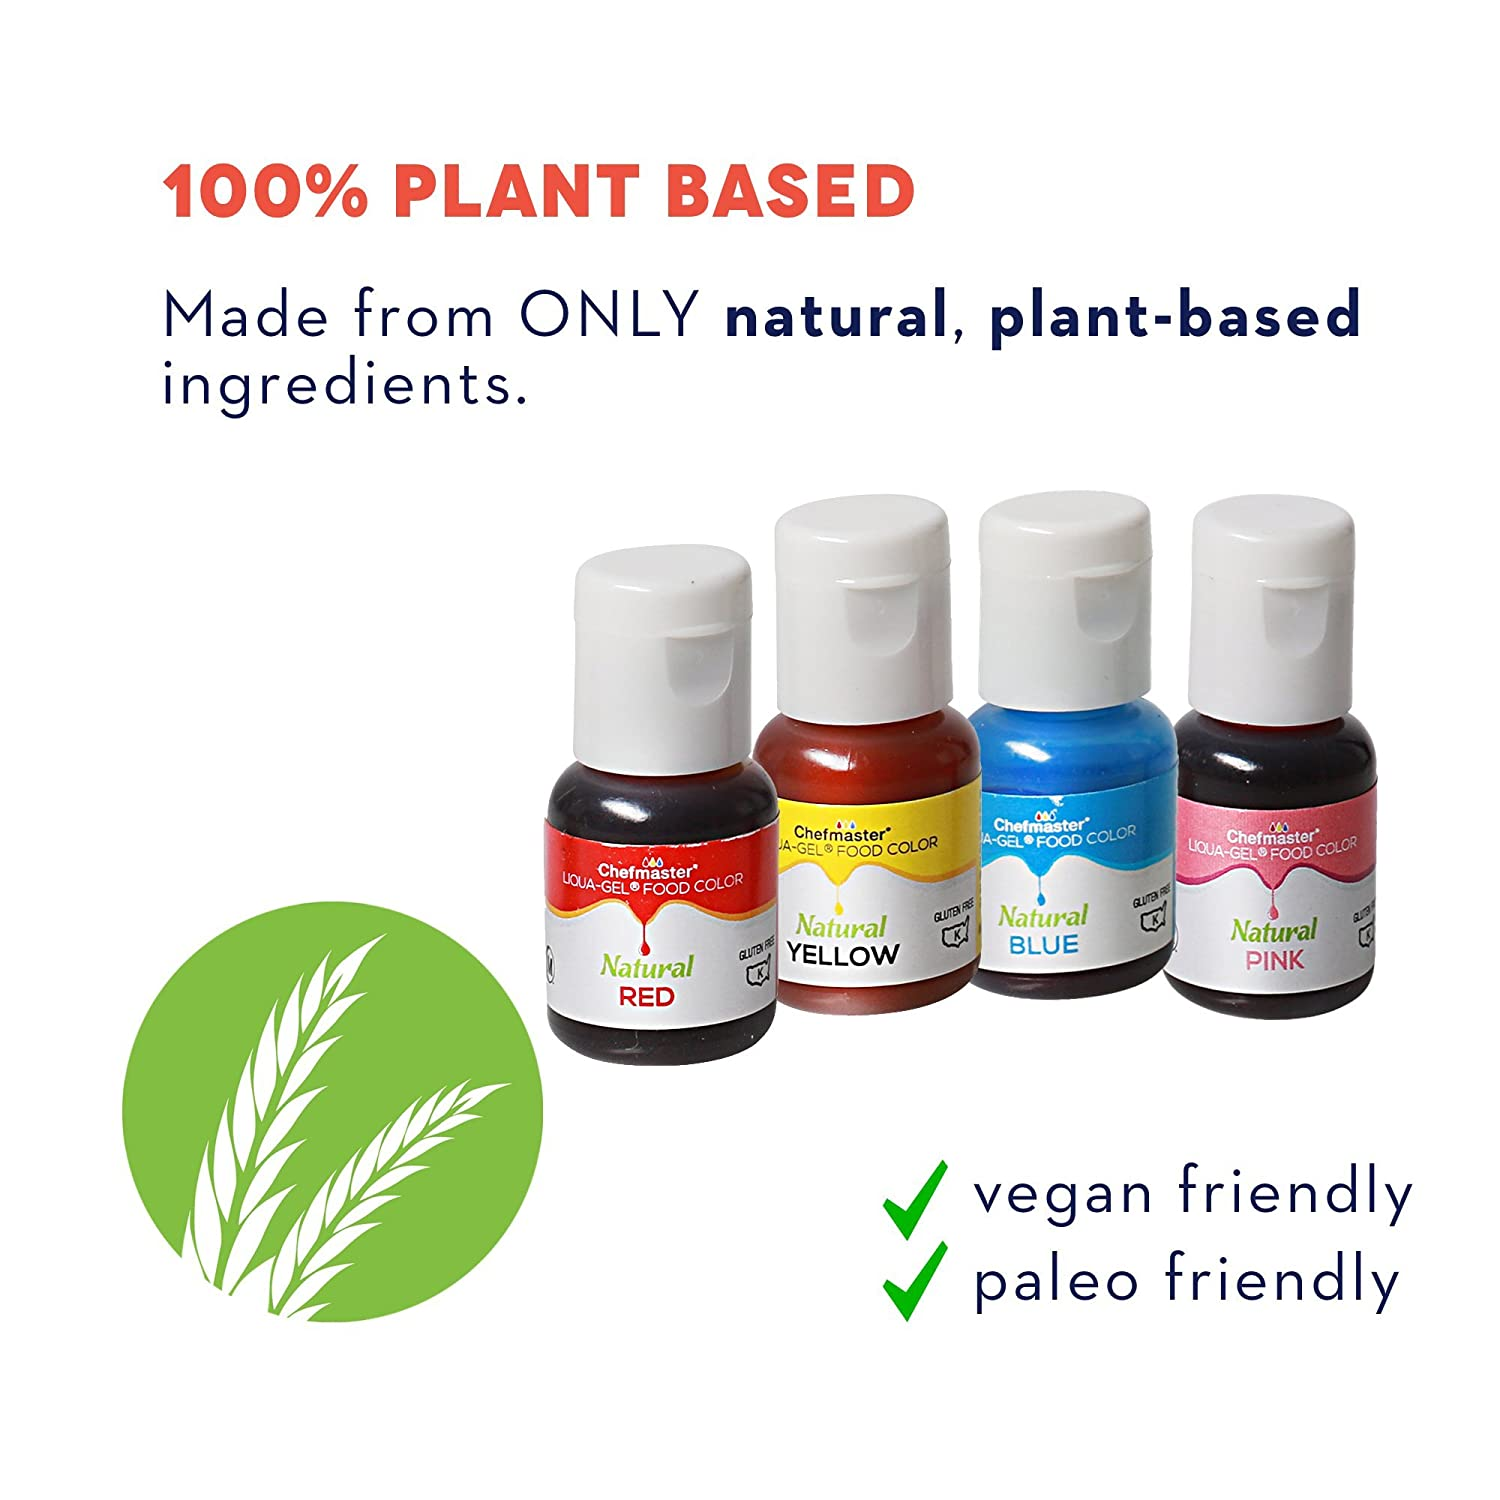 Amazon.com : Chefmaster All Natural Food Coloring, Vegan-Friendly ...